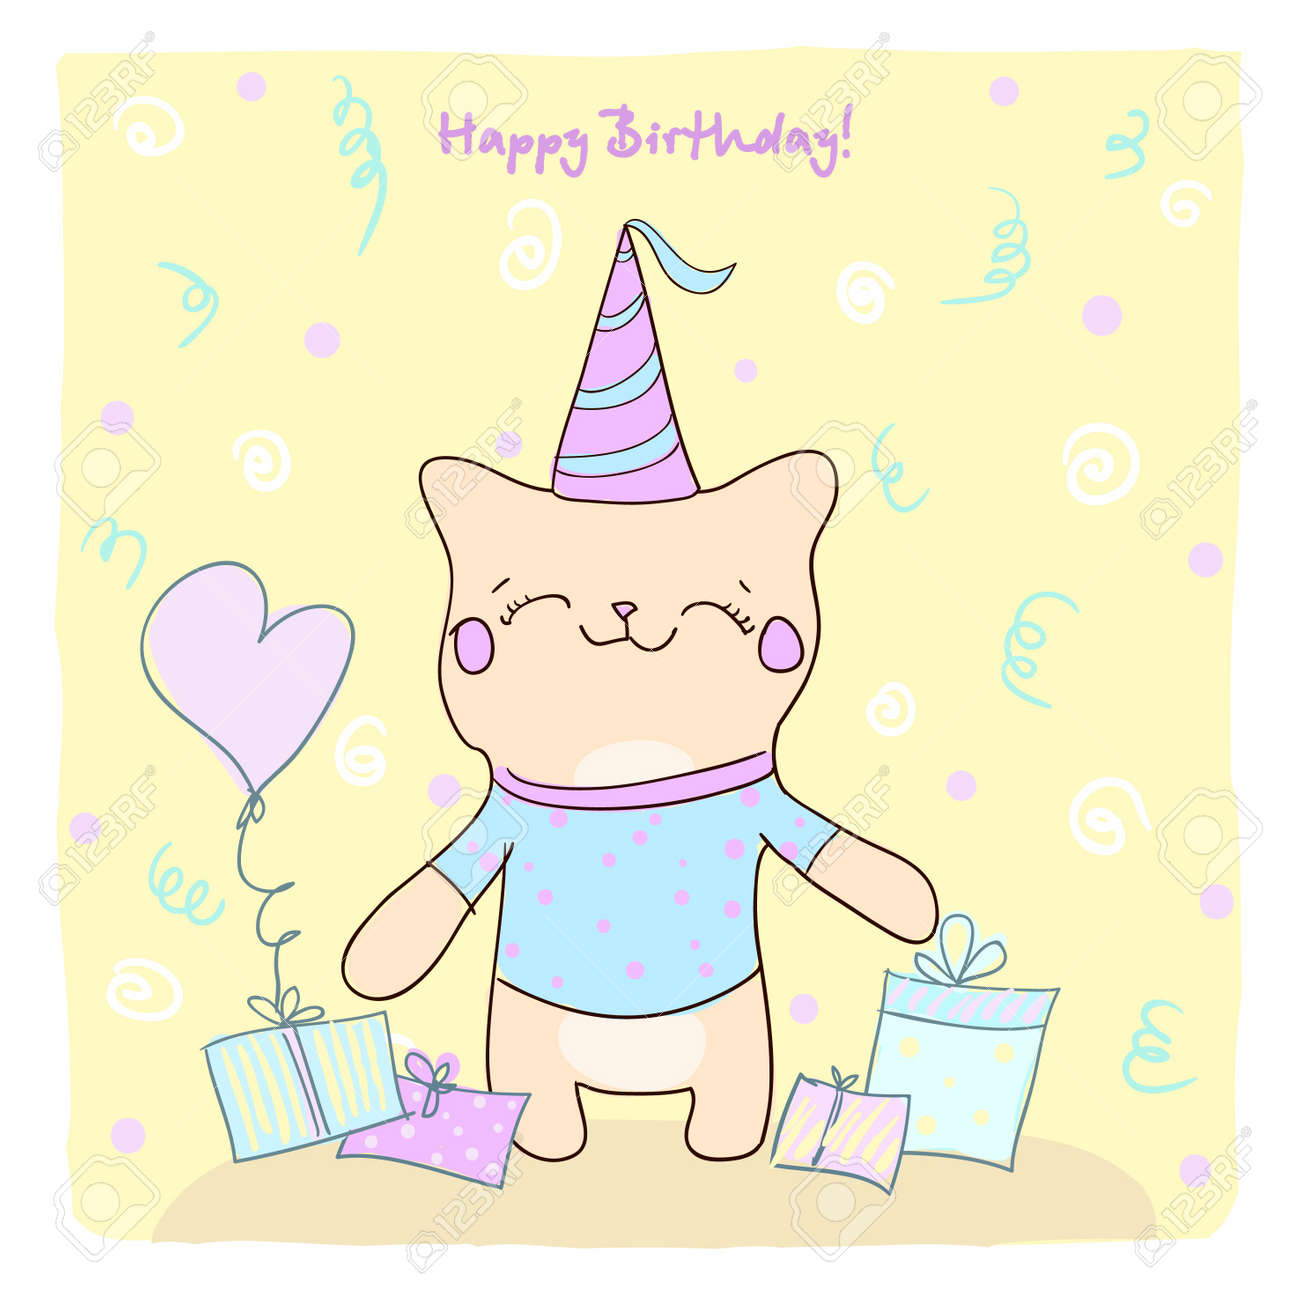 Birtday card for boy with cute smiling kitty and gifts Stock Vector - 13942110